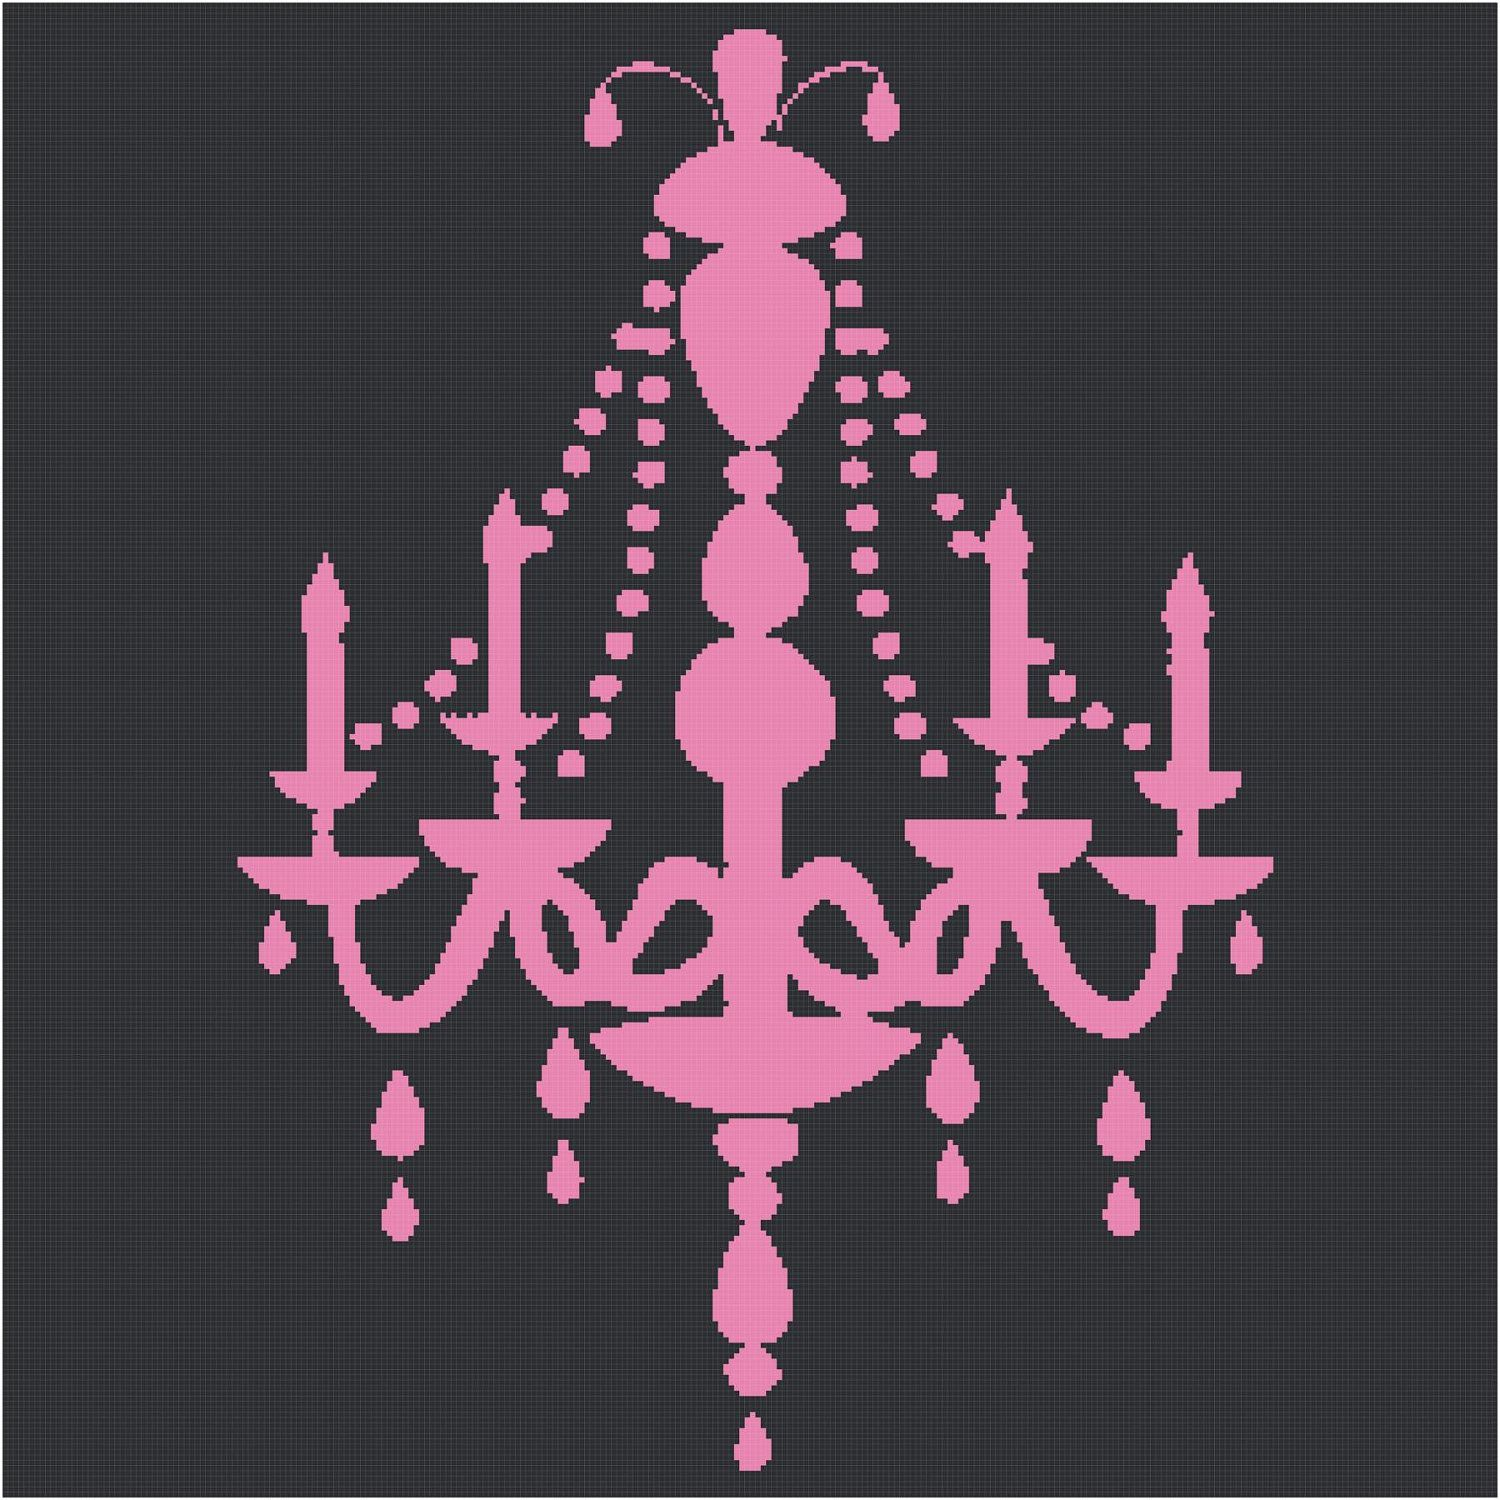 Chandelier Silhouette Cross Stitch Pattern Events